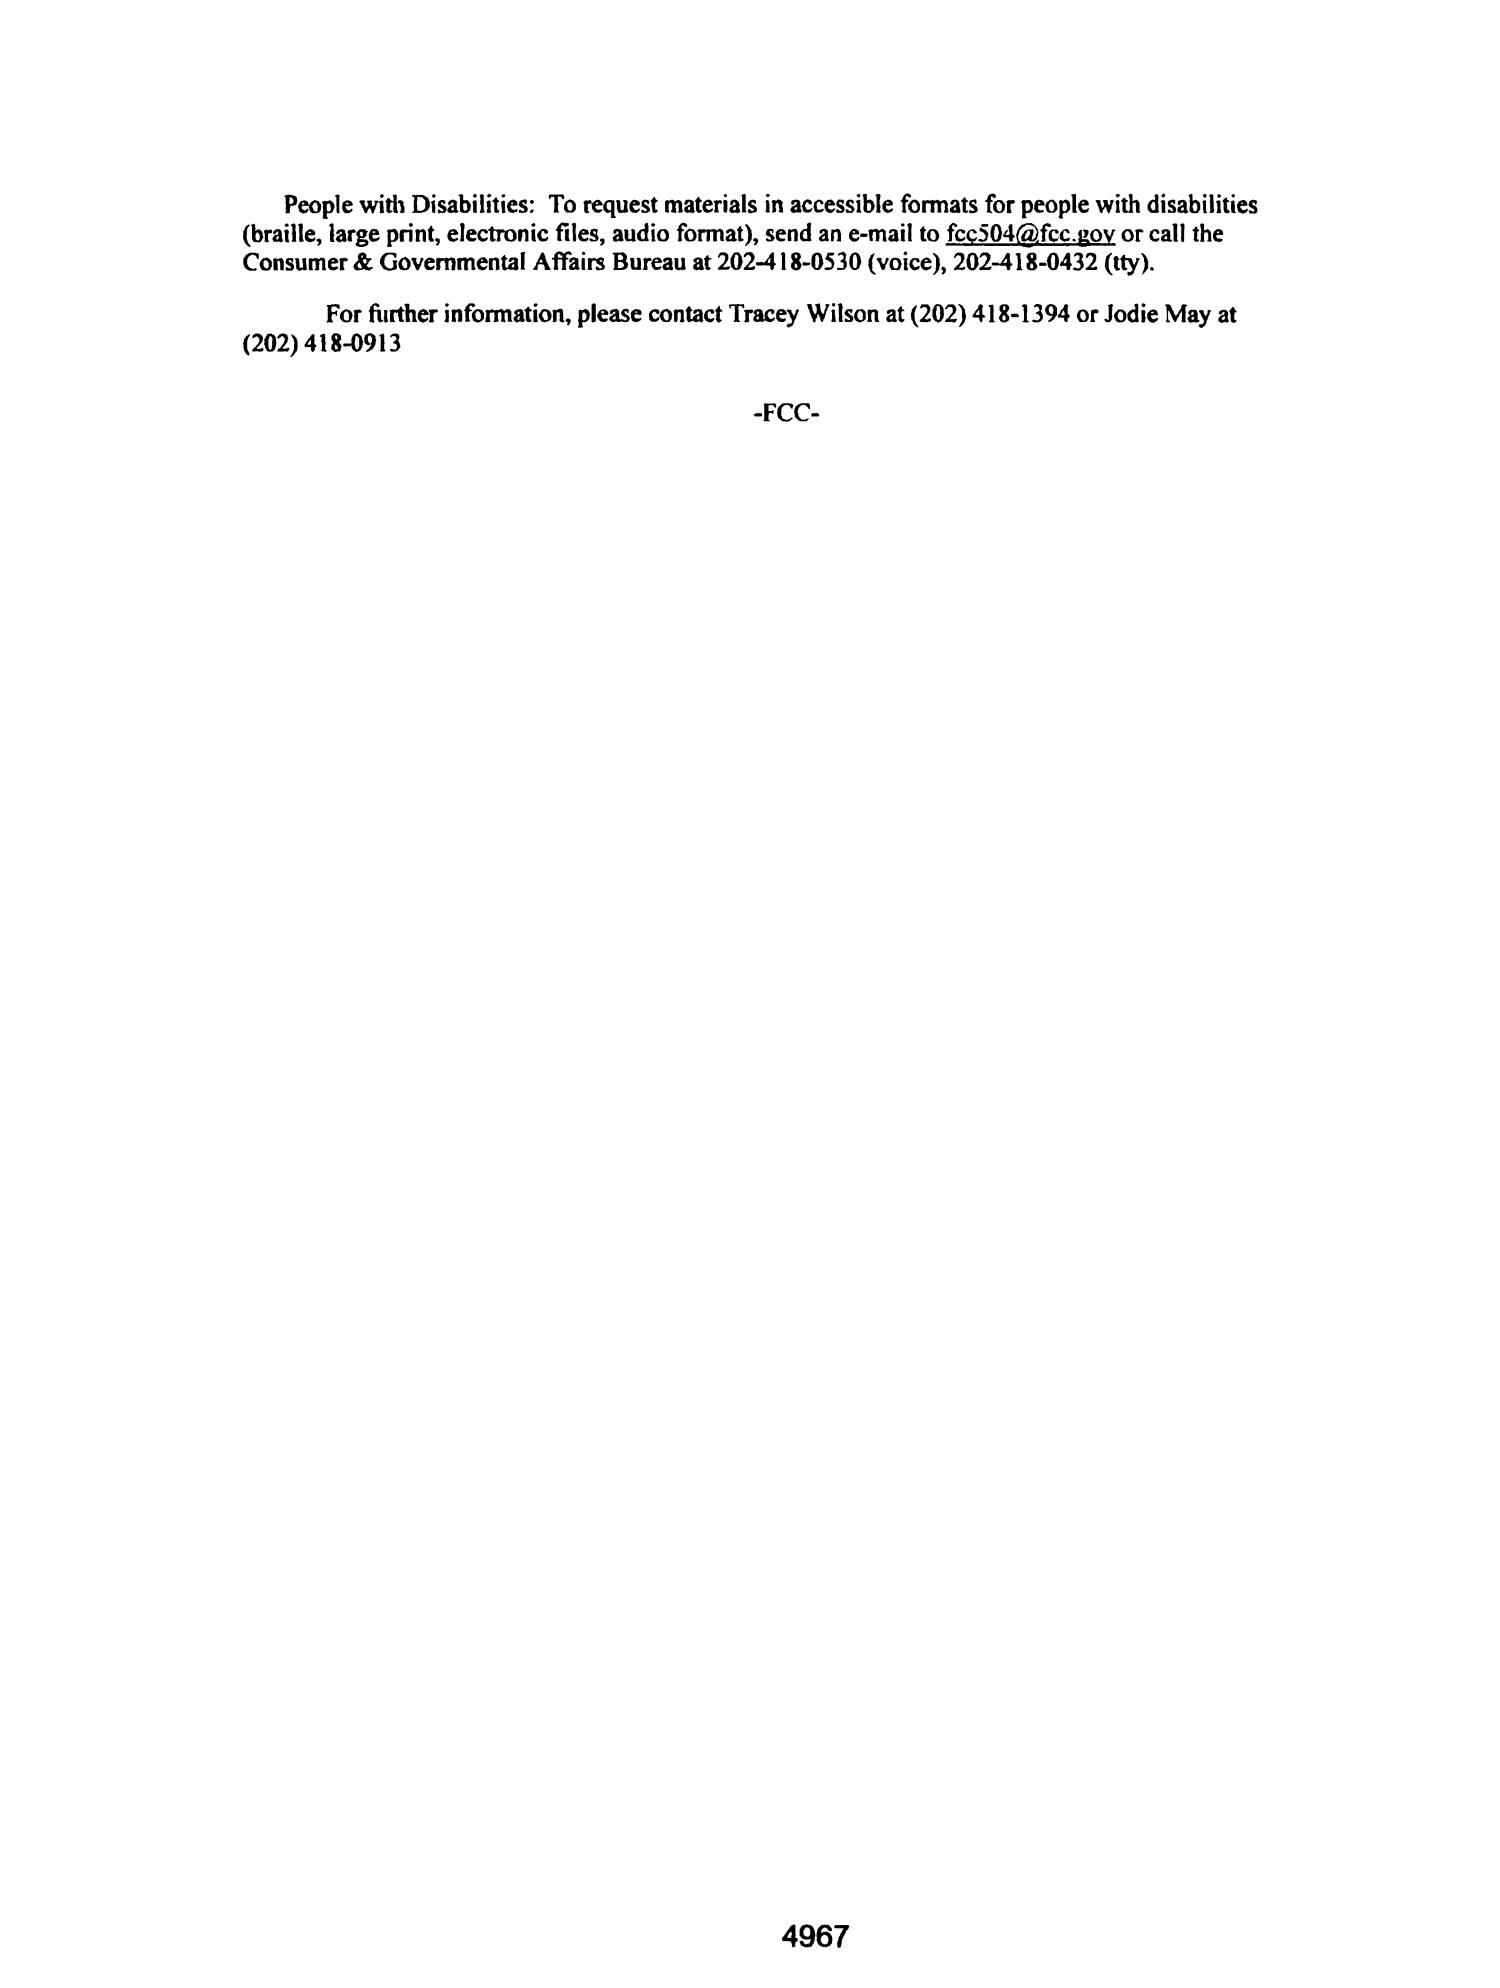 FCC Record, Volume 26, No. 7, Pages 4843 to 5761, March 28 - April 08, 2011                                                                                                      4967